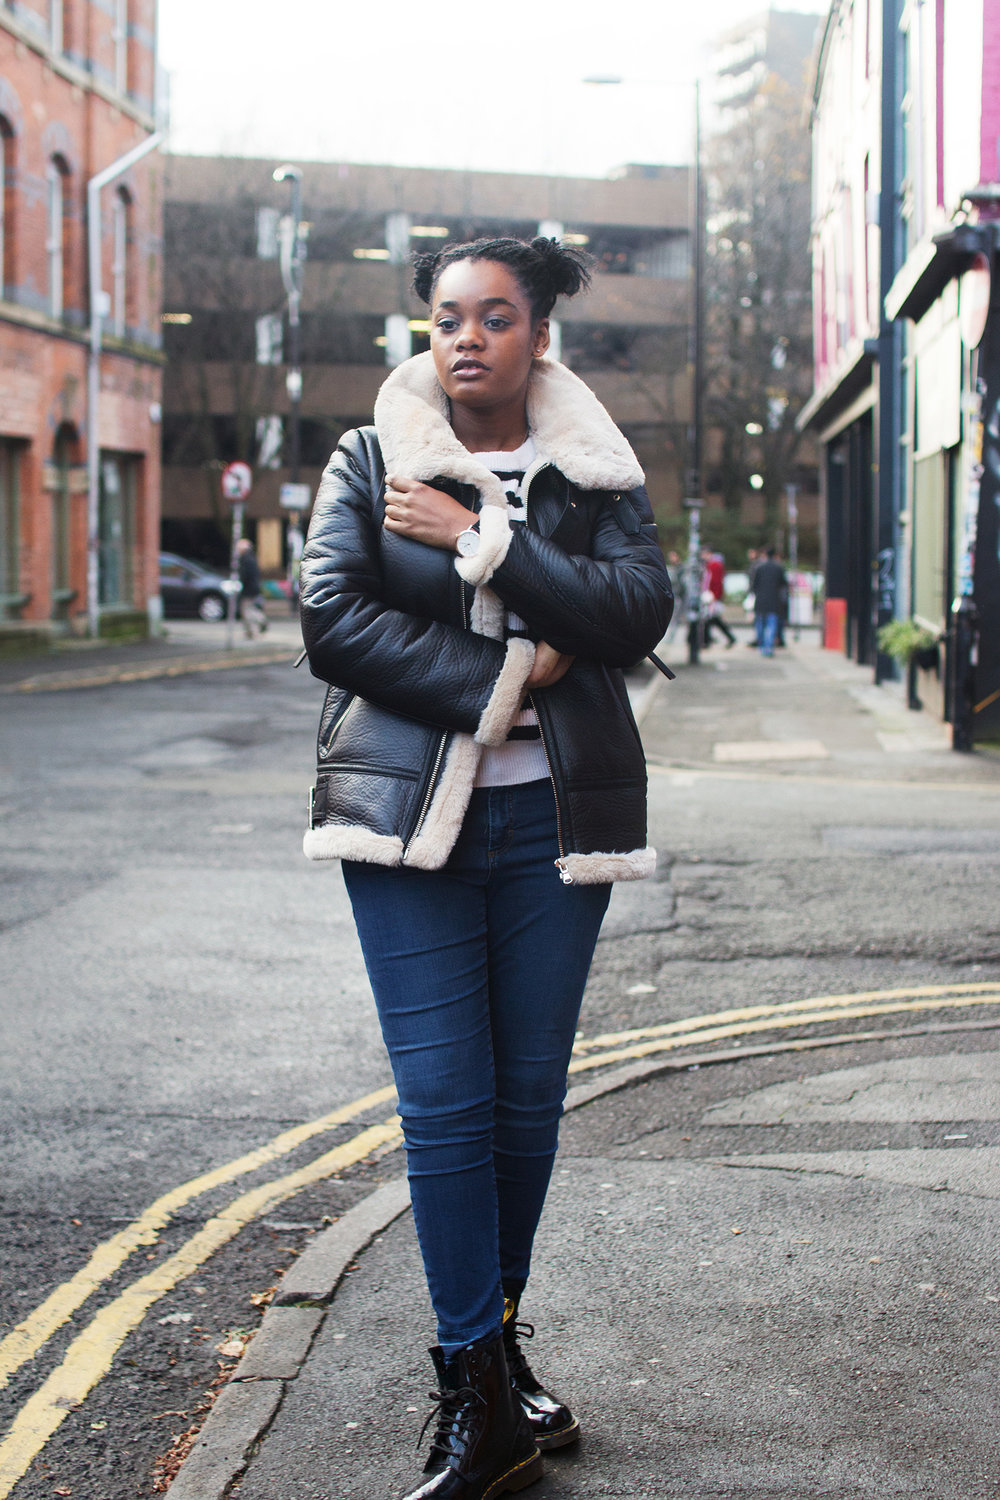 Blogger-Photoshoot-Manchester.jpg